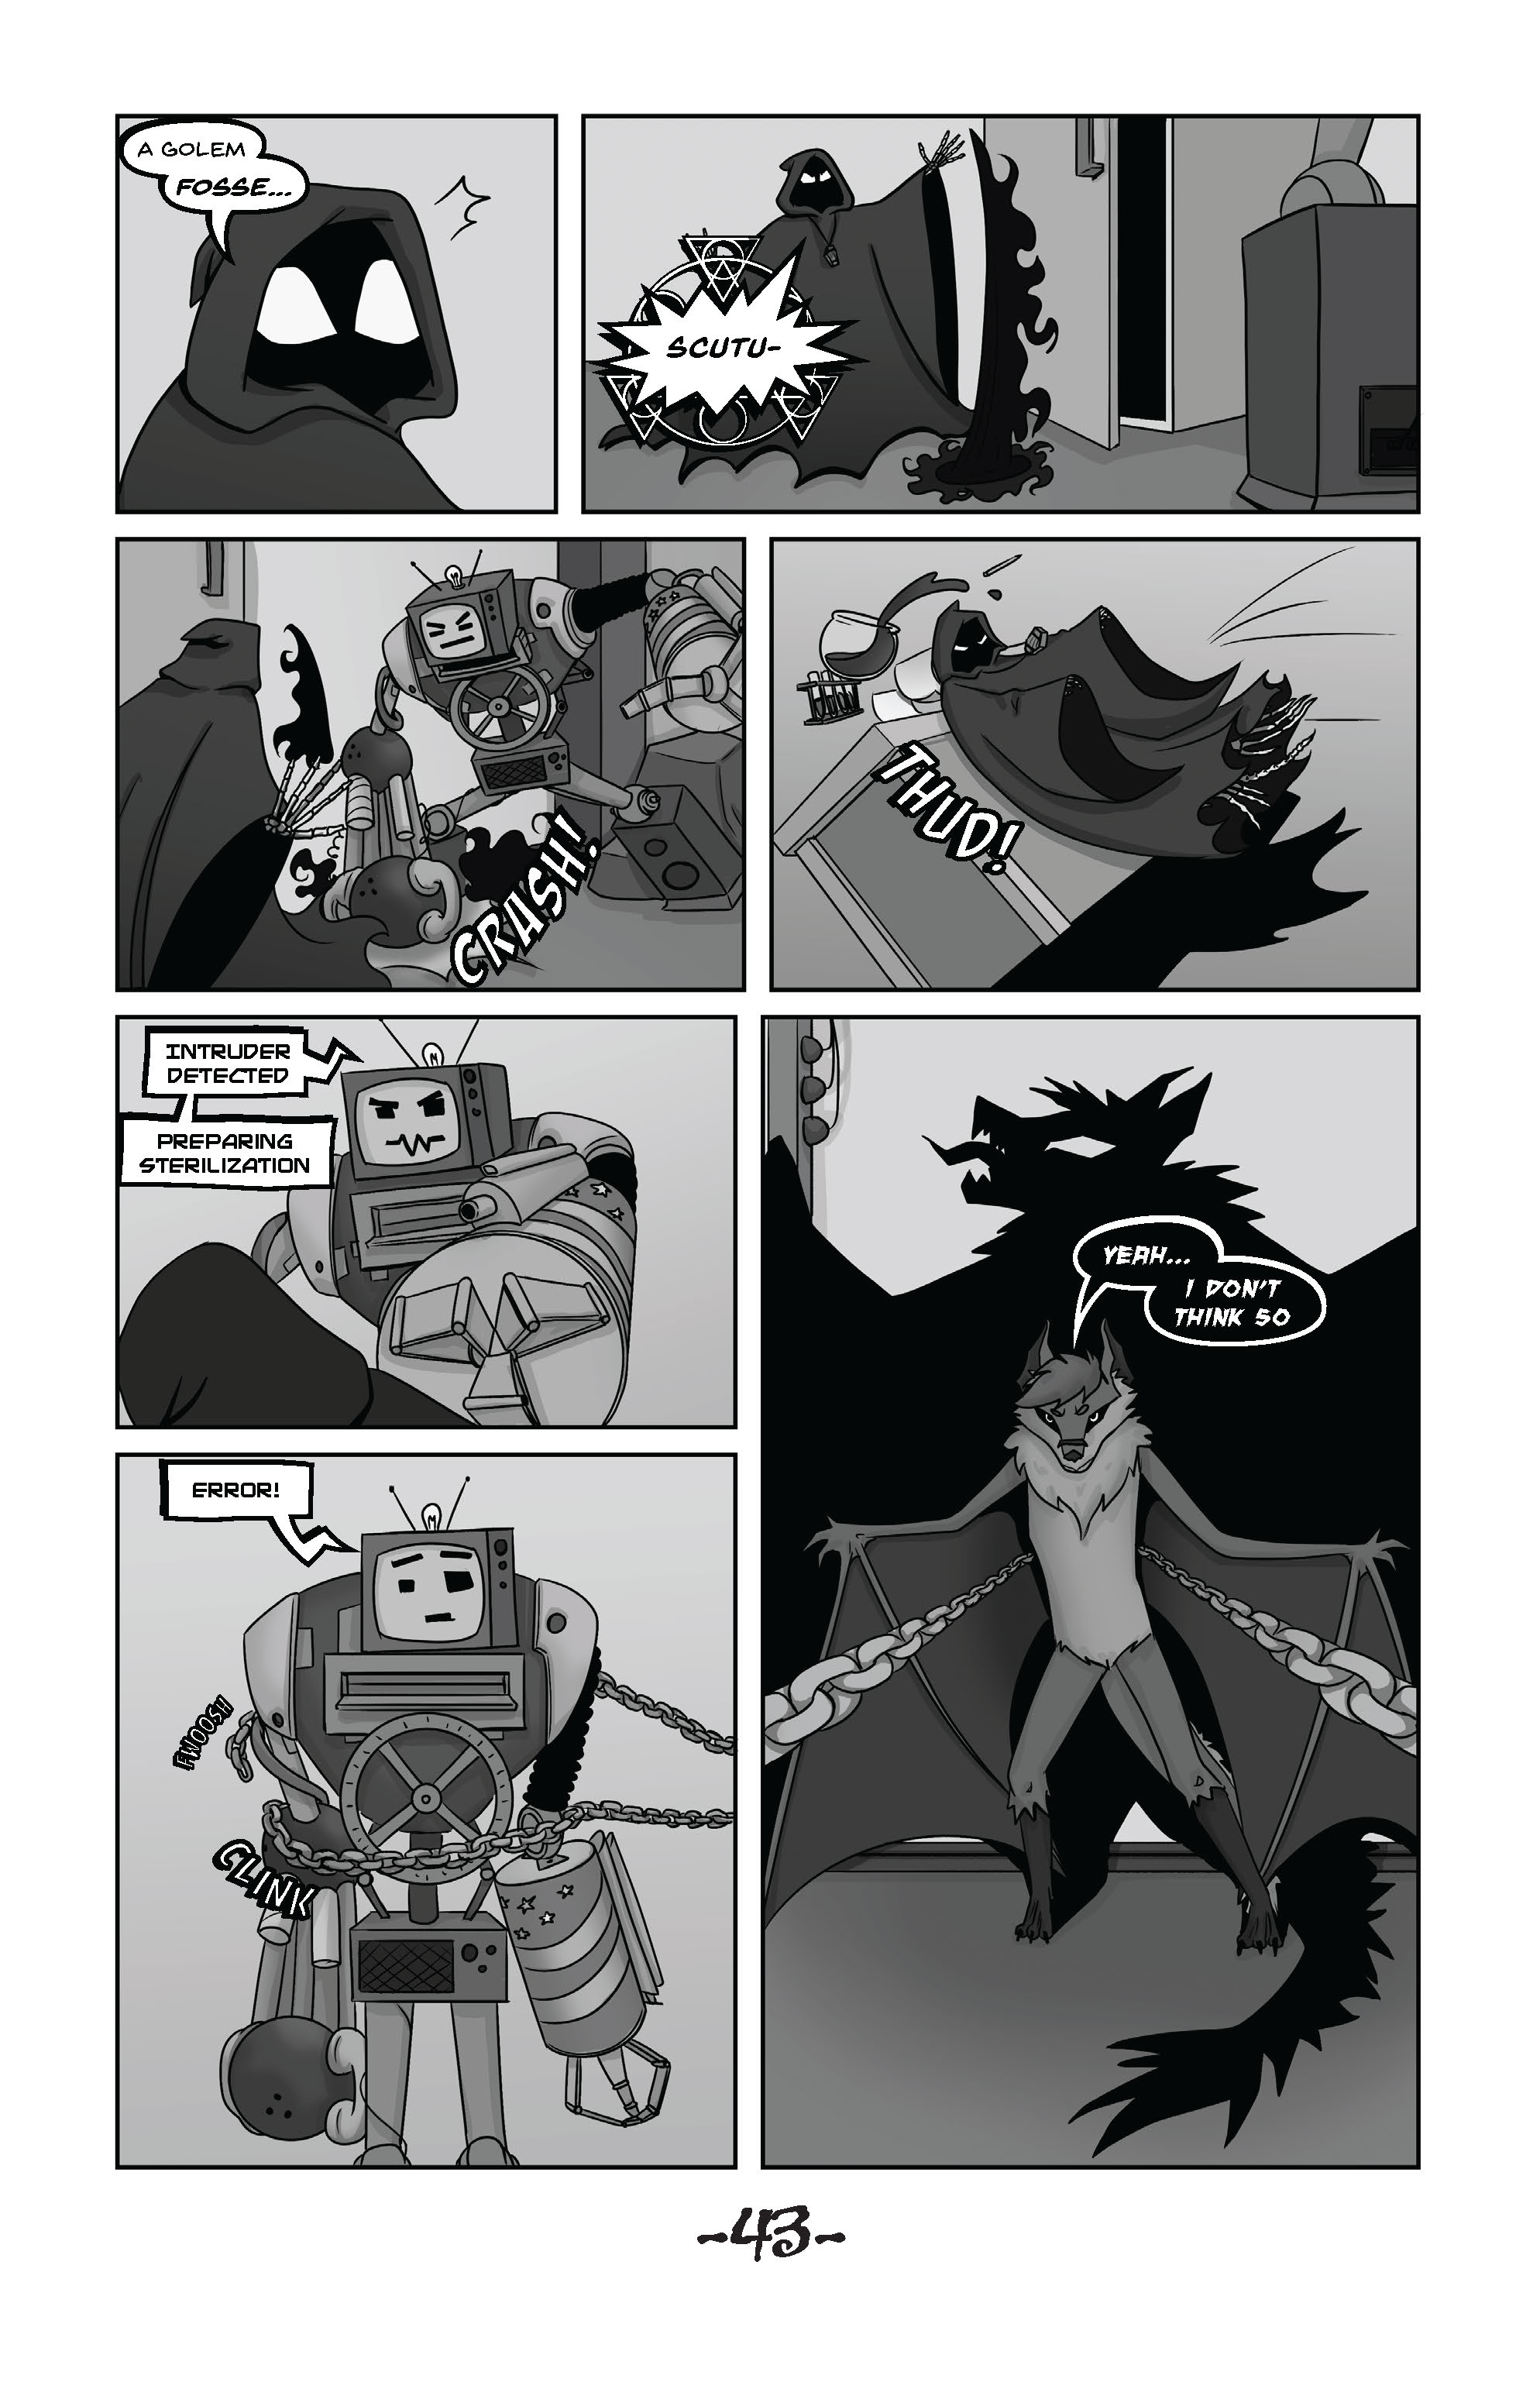 Chapter 2: Page 43